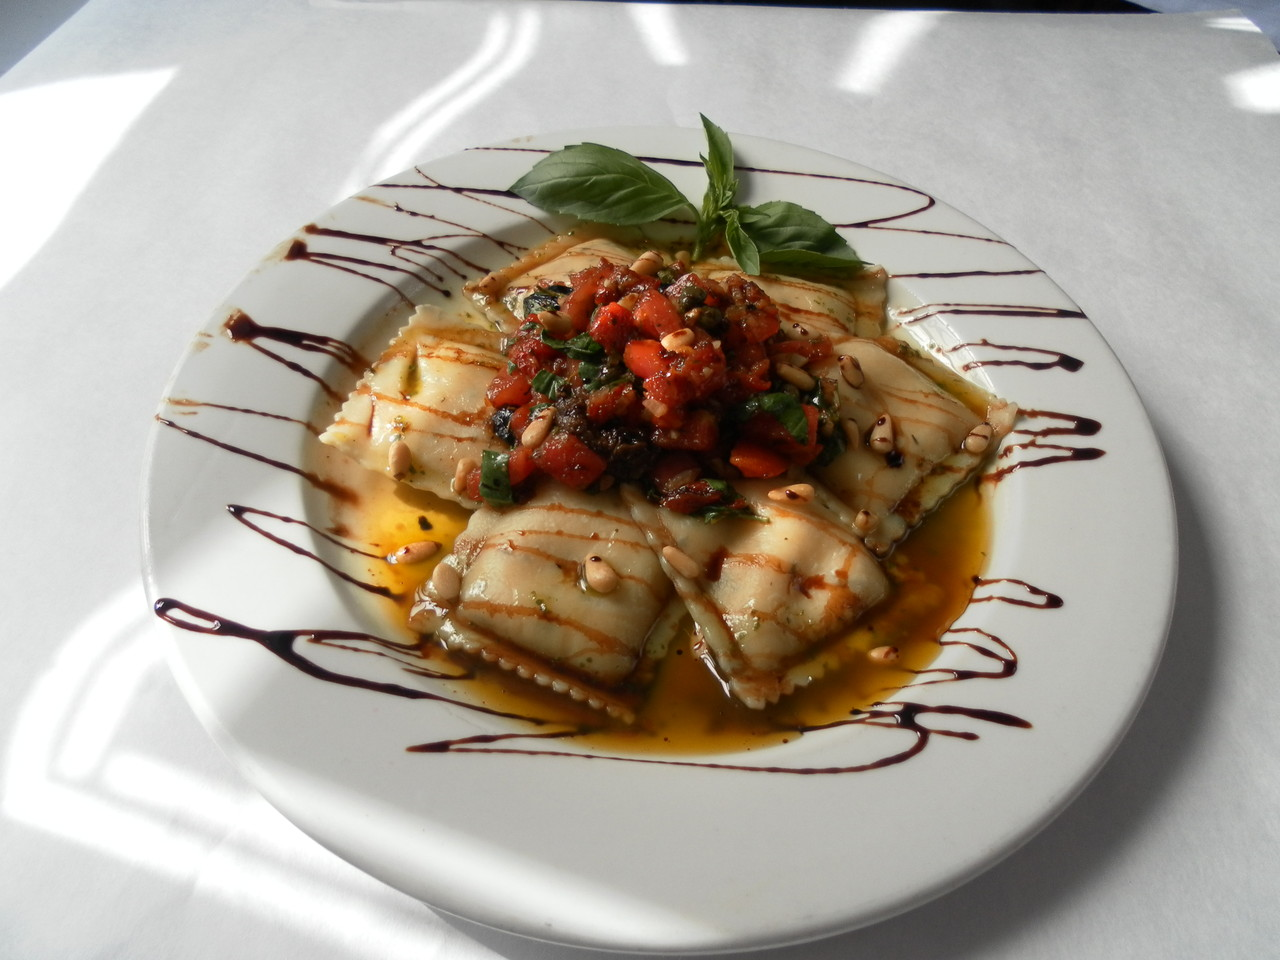 Goat Cheese Ravioli with Organic Herbs